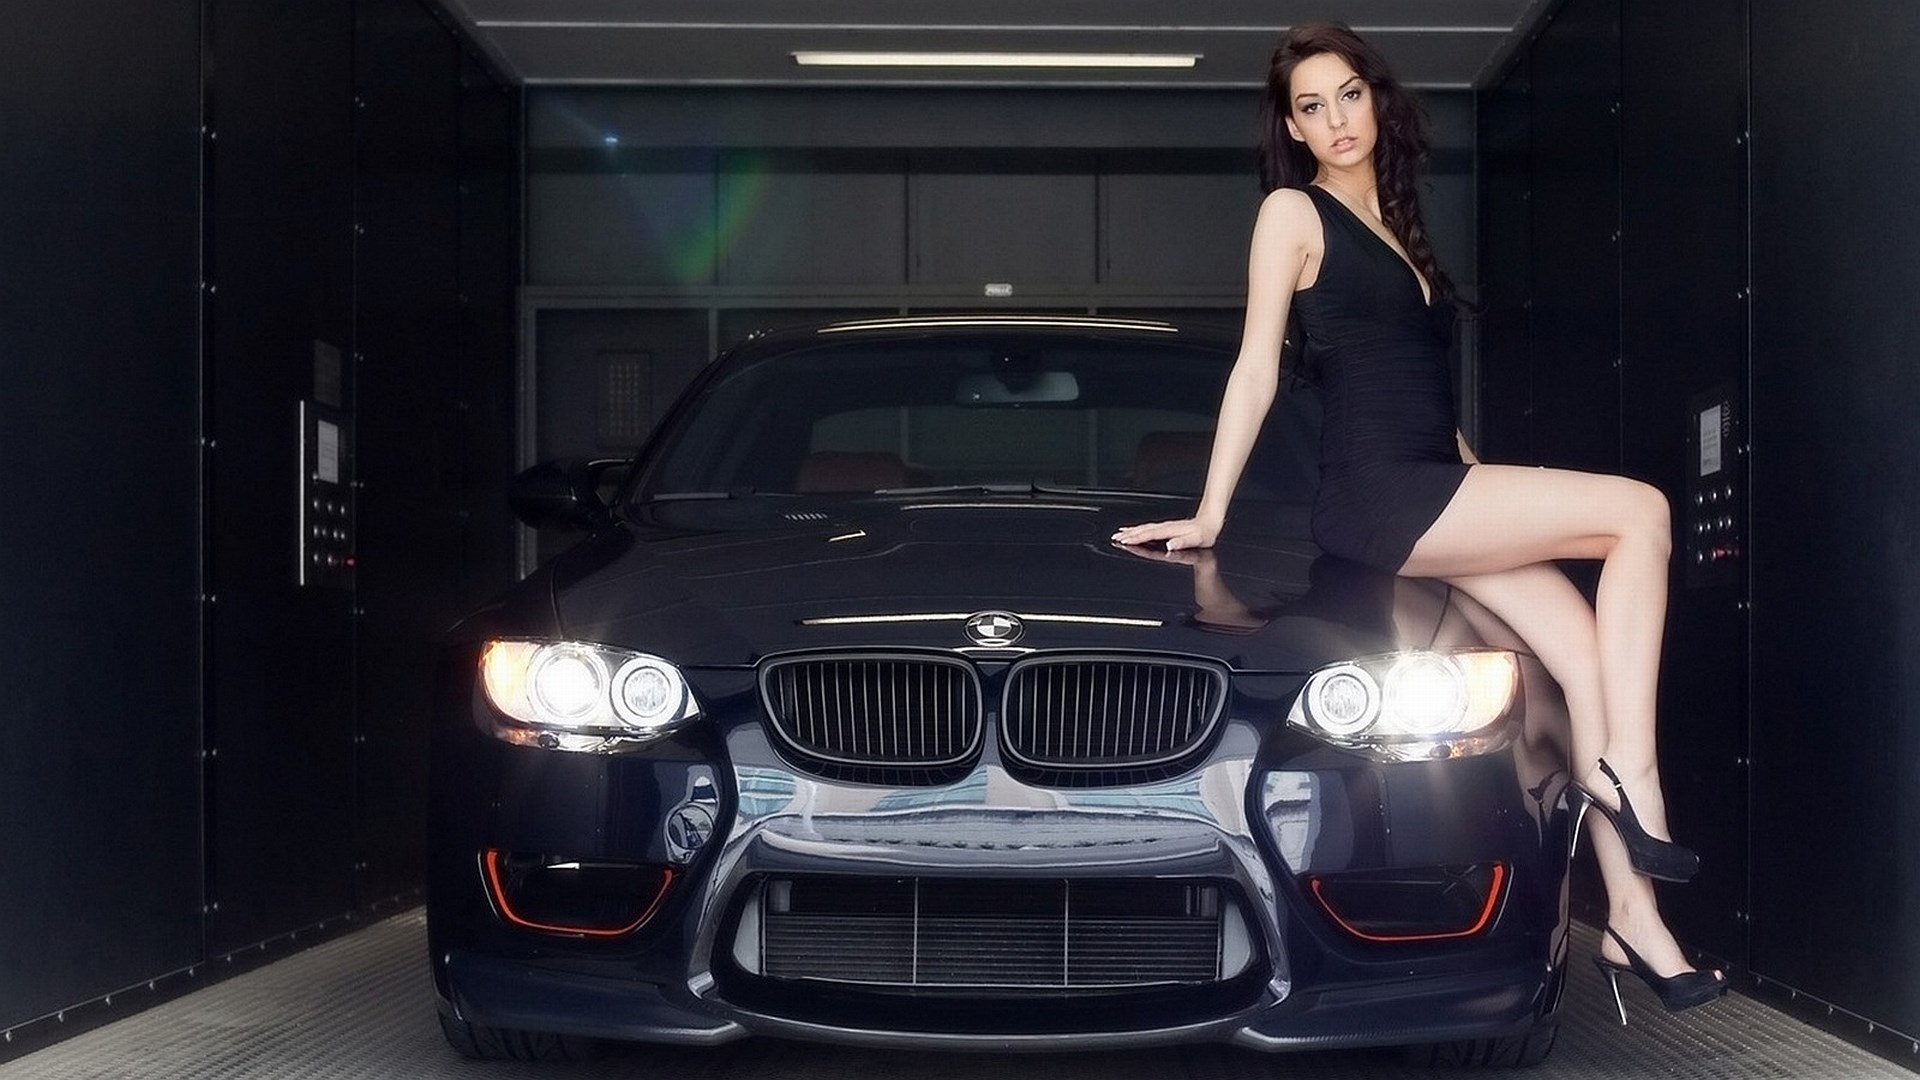 1920x1080-High-Resolution-girls-and-cars-wallpaper-wpc580870